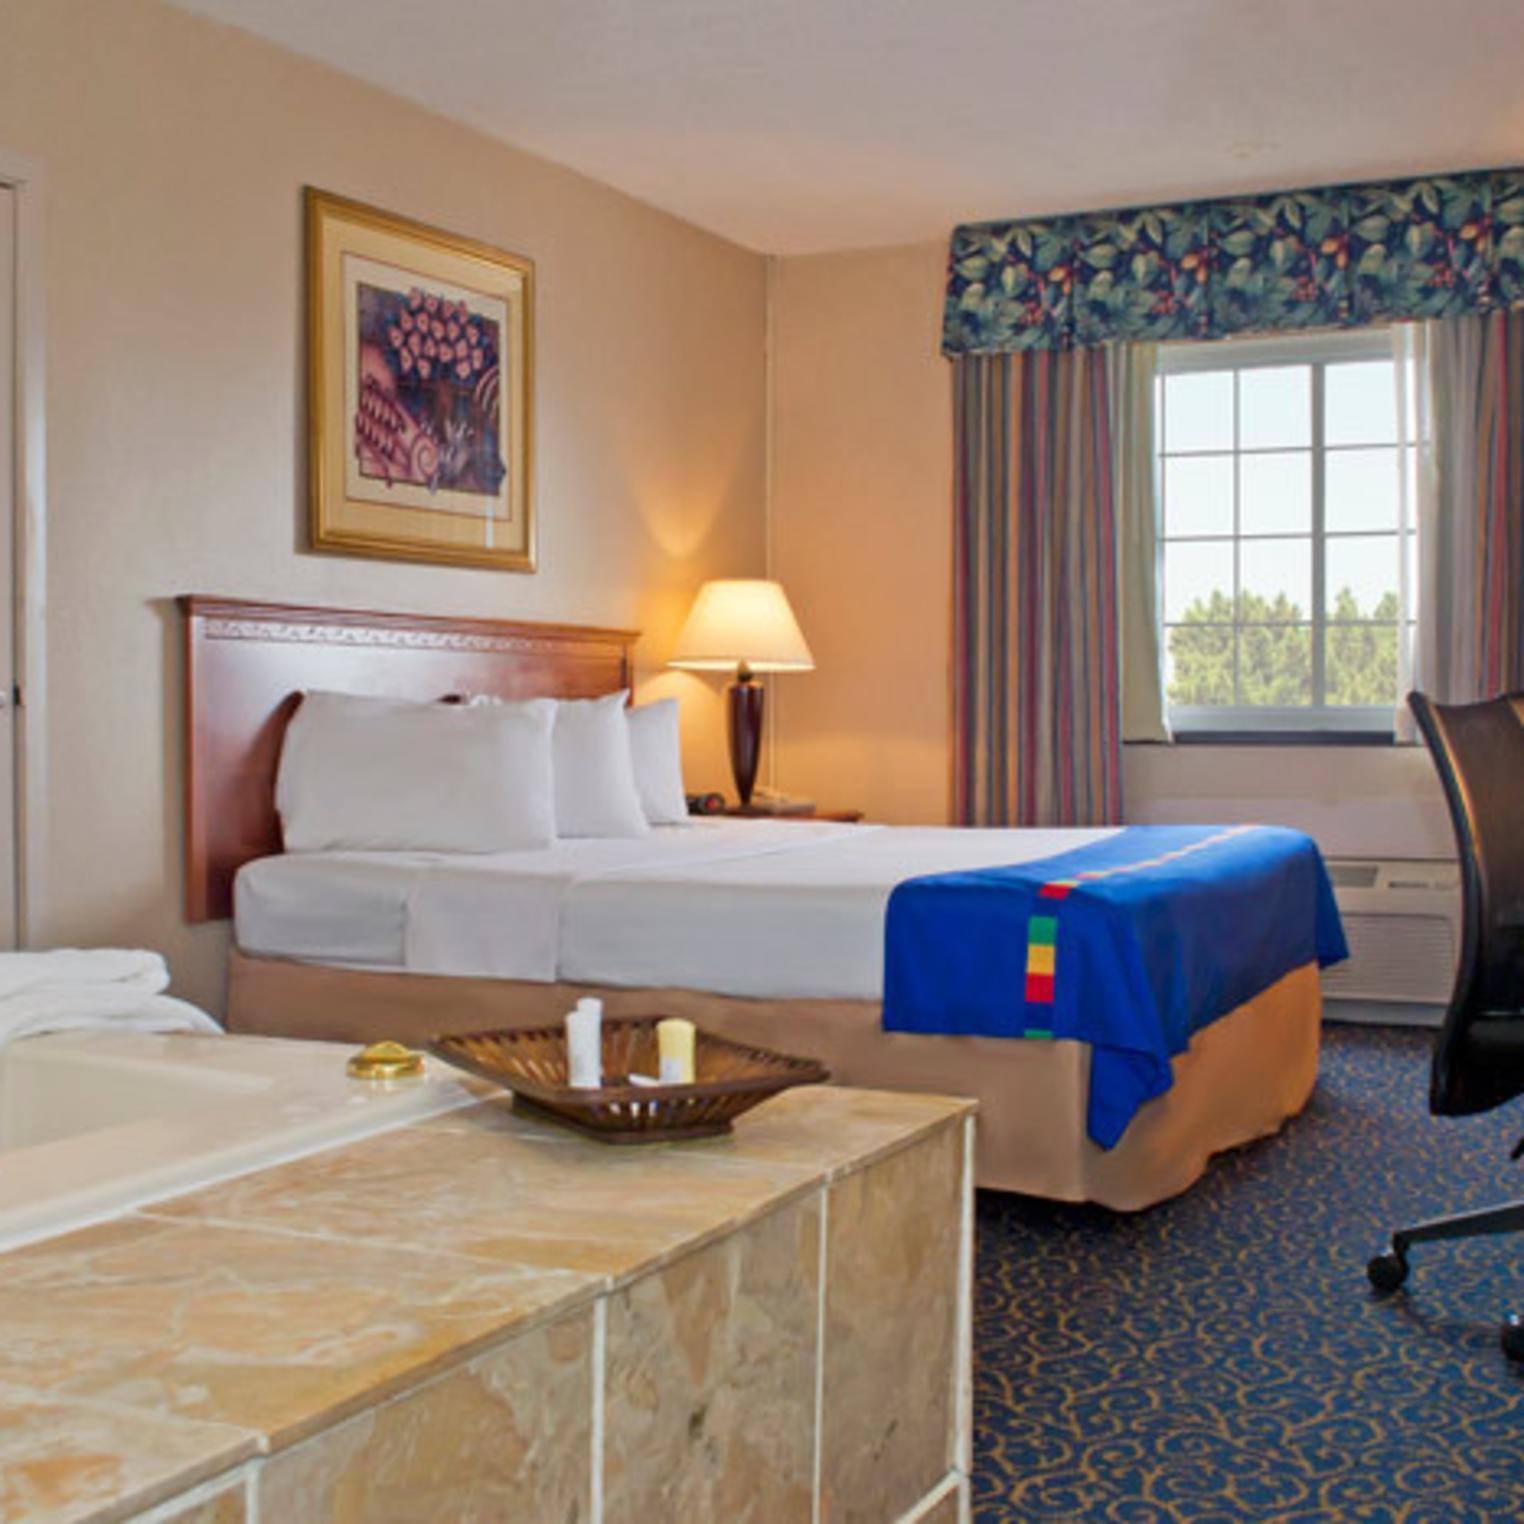 King Jacuzzi Suite at the Park Inn